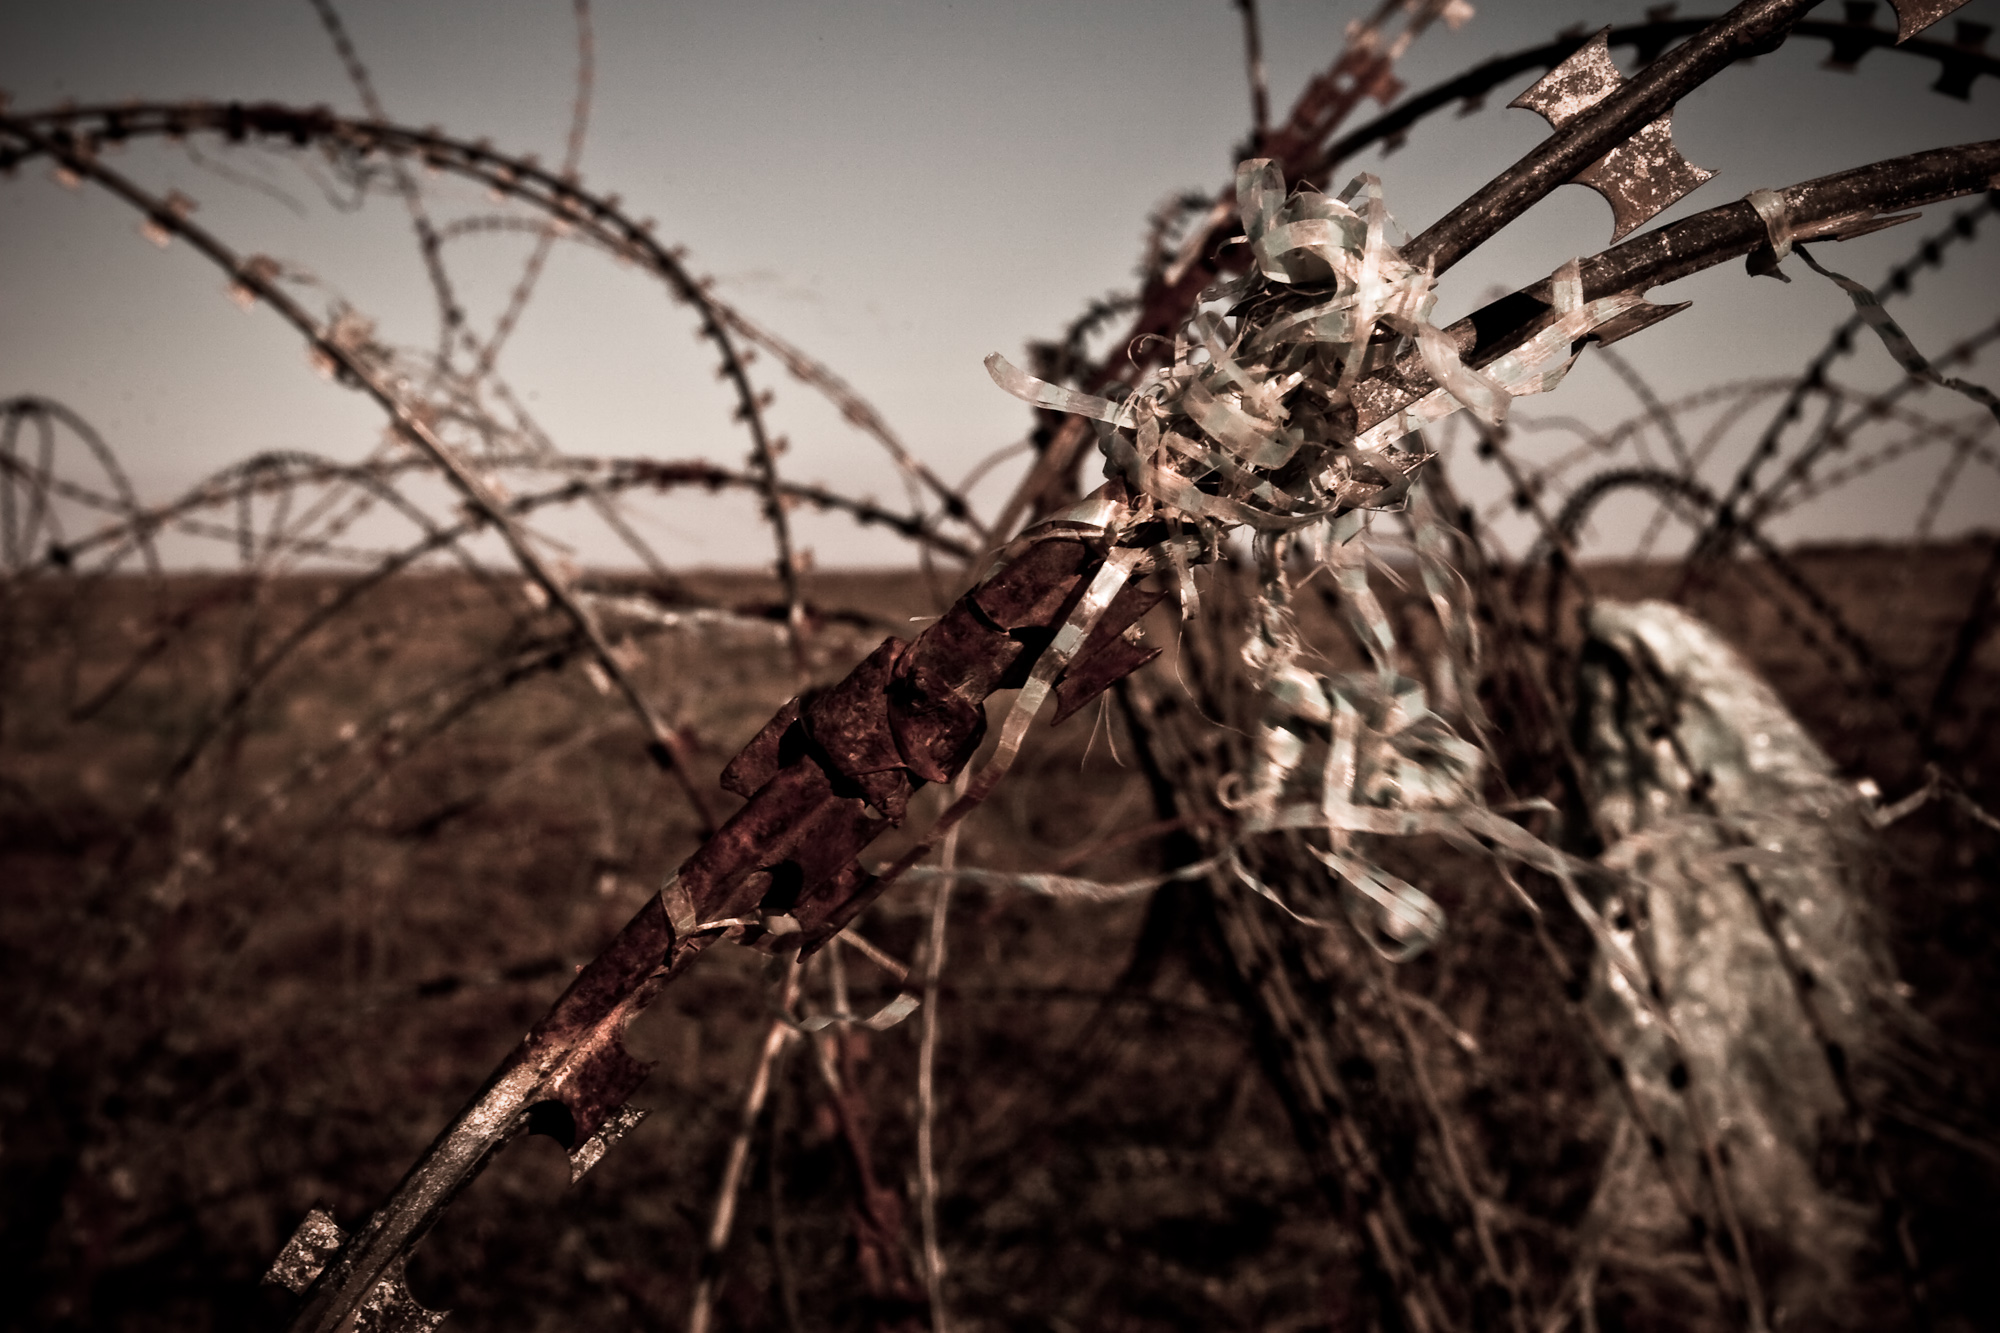 Barbed Wire, Abstract, Barbed, Barbedwire, Industrial, HQ Photo